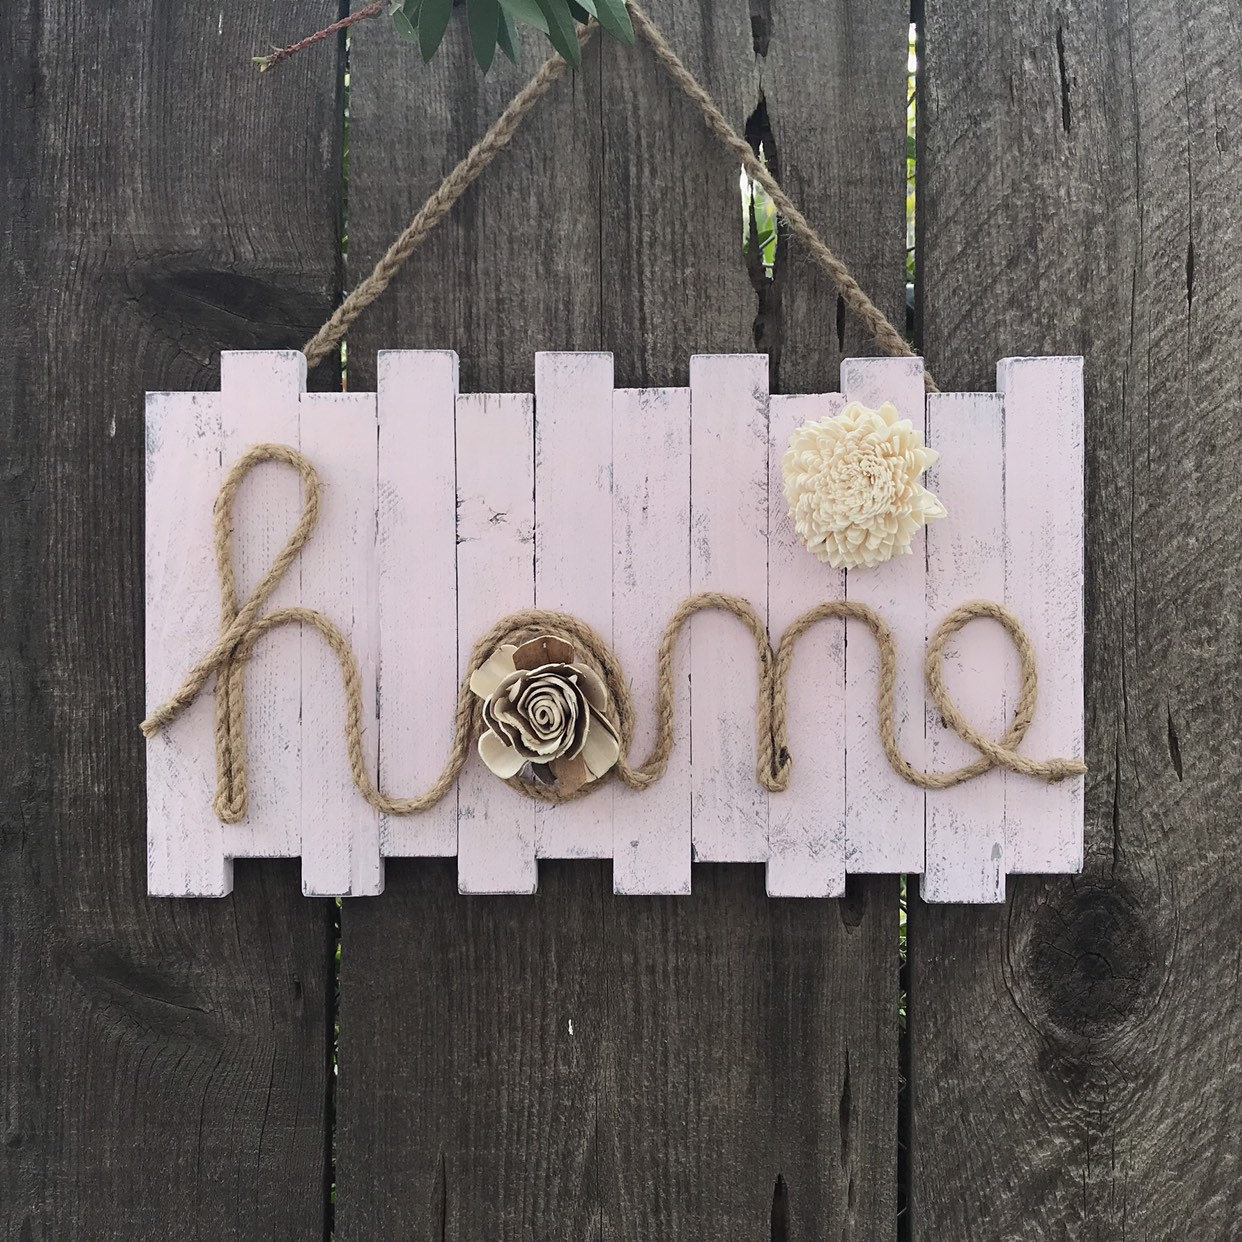 Word Home Sign, Wall Decor Sign, Handmade Wood Wall Hanging, Home Quote  Sign With Rope And Flowers, Handcrafted Wood Sign, with regard to Metal Rope Wall Sign Wall Decor (Image 30 of 30)